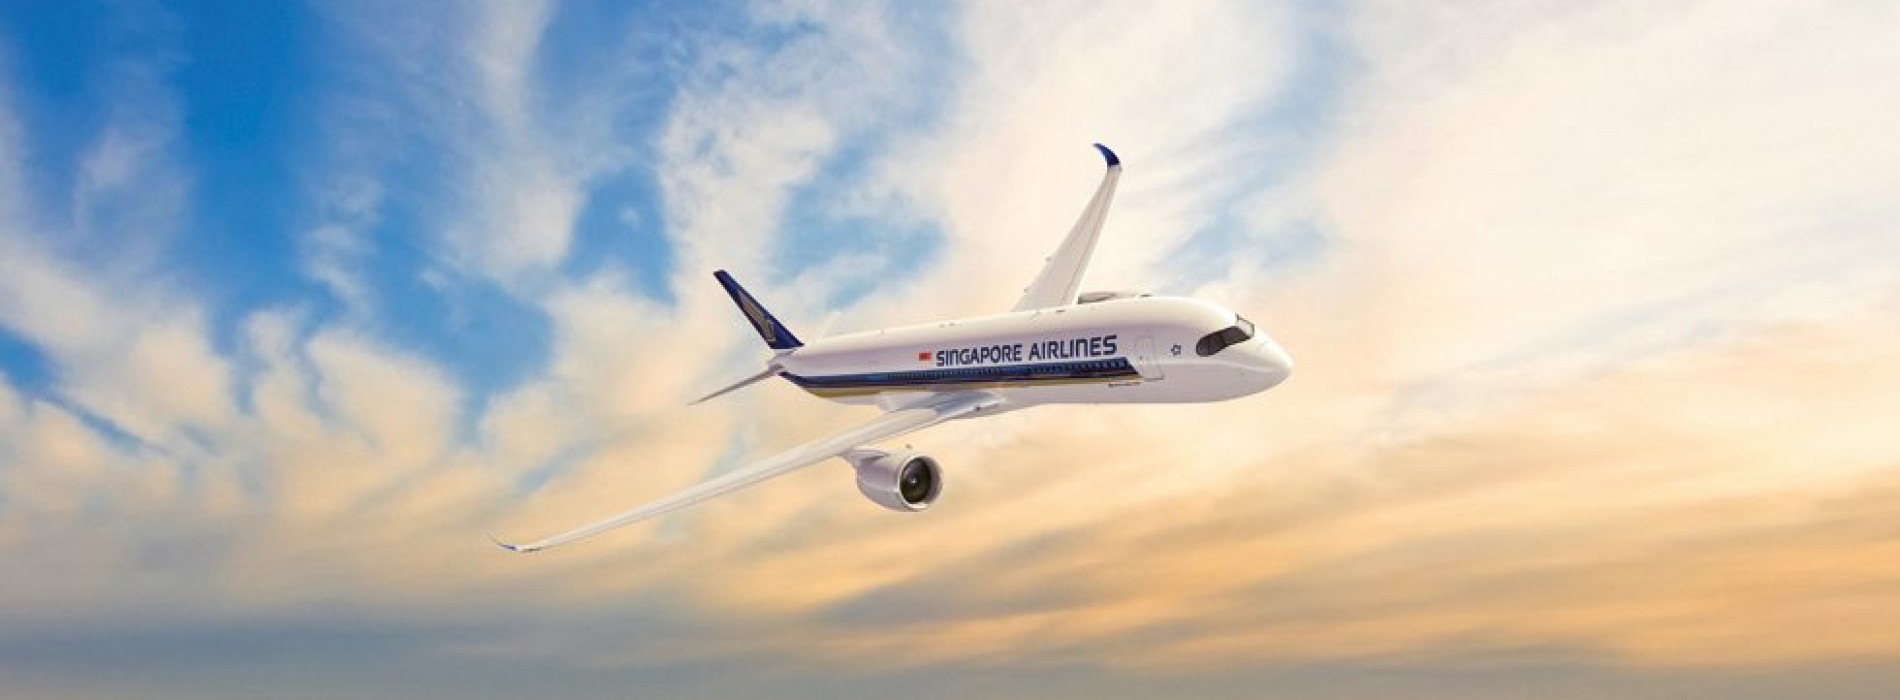 Singapore Airlines to Boost F&B Sustainability Practices